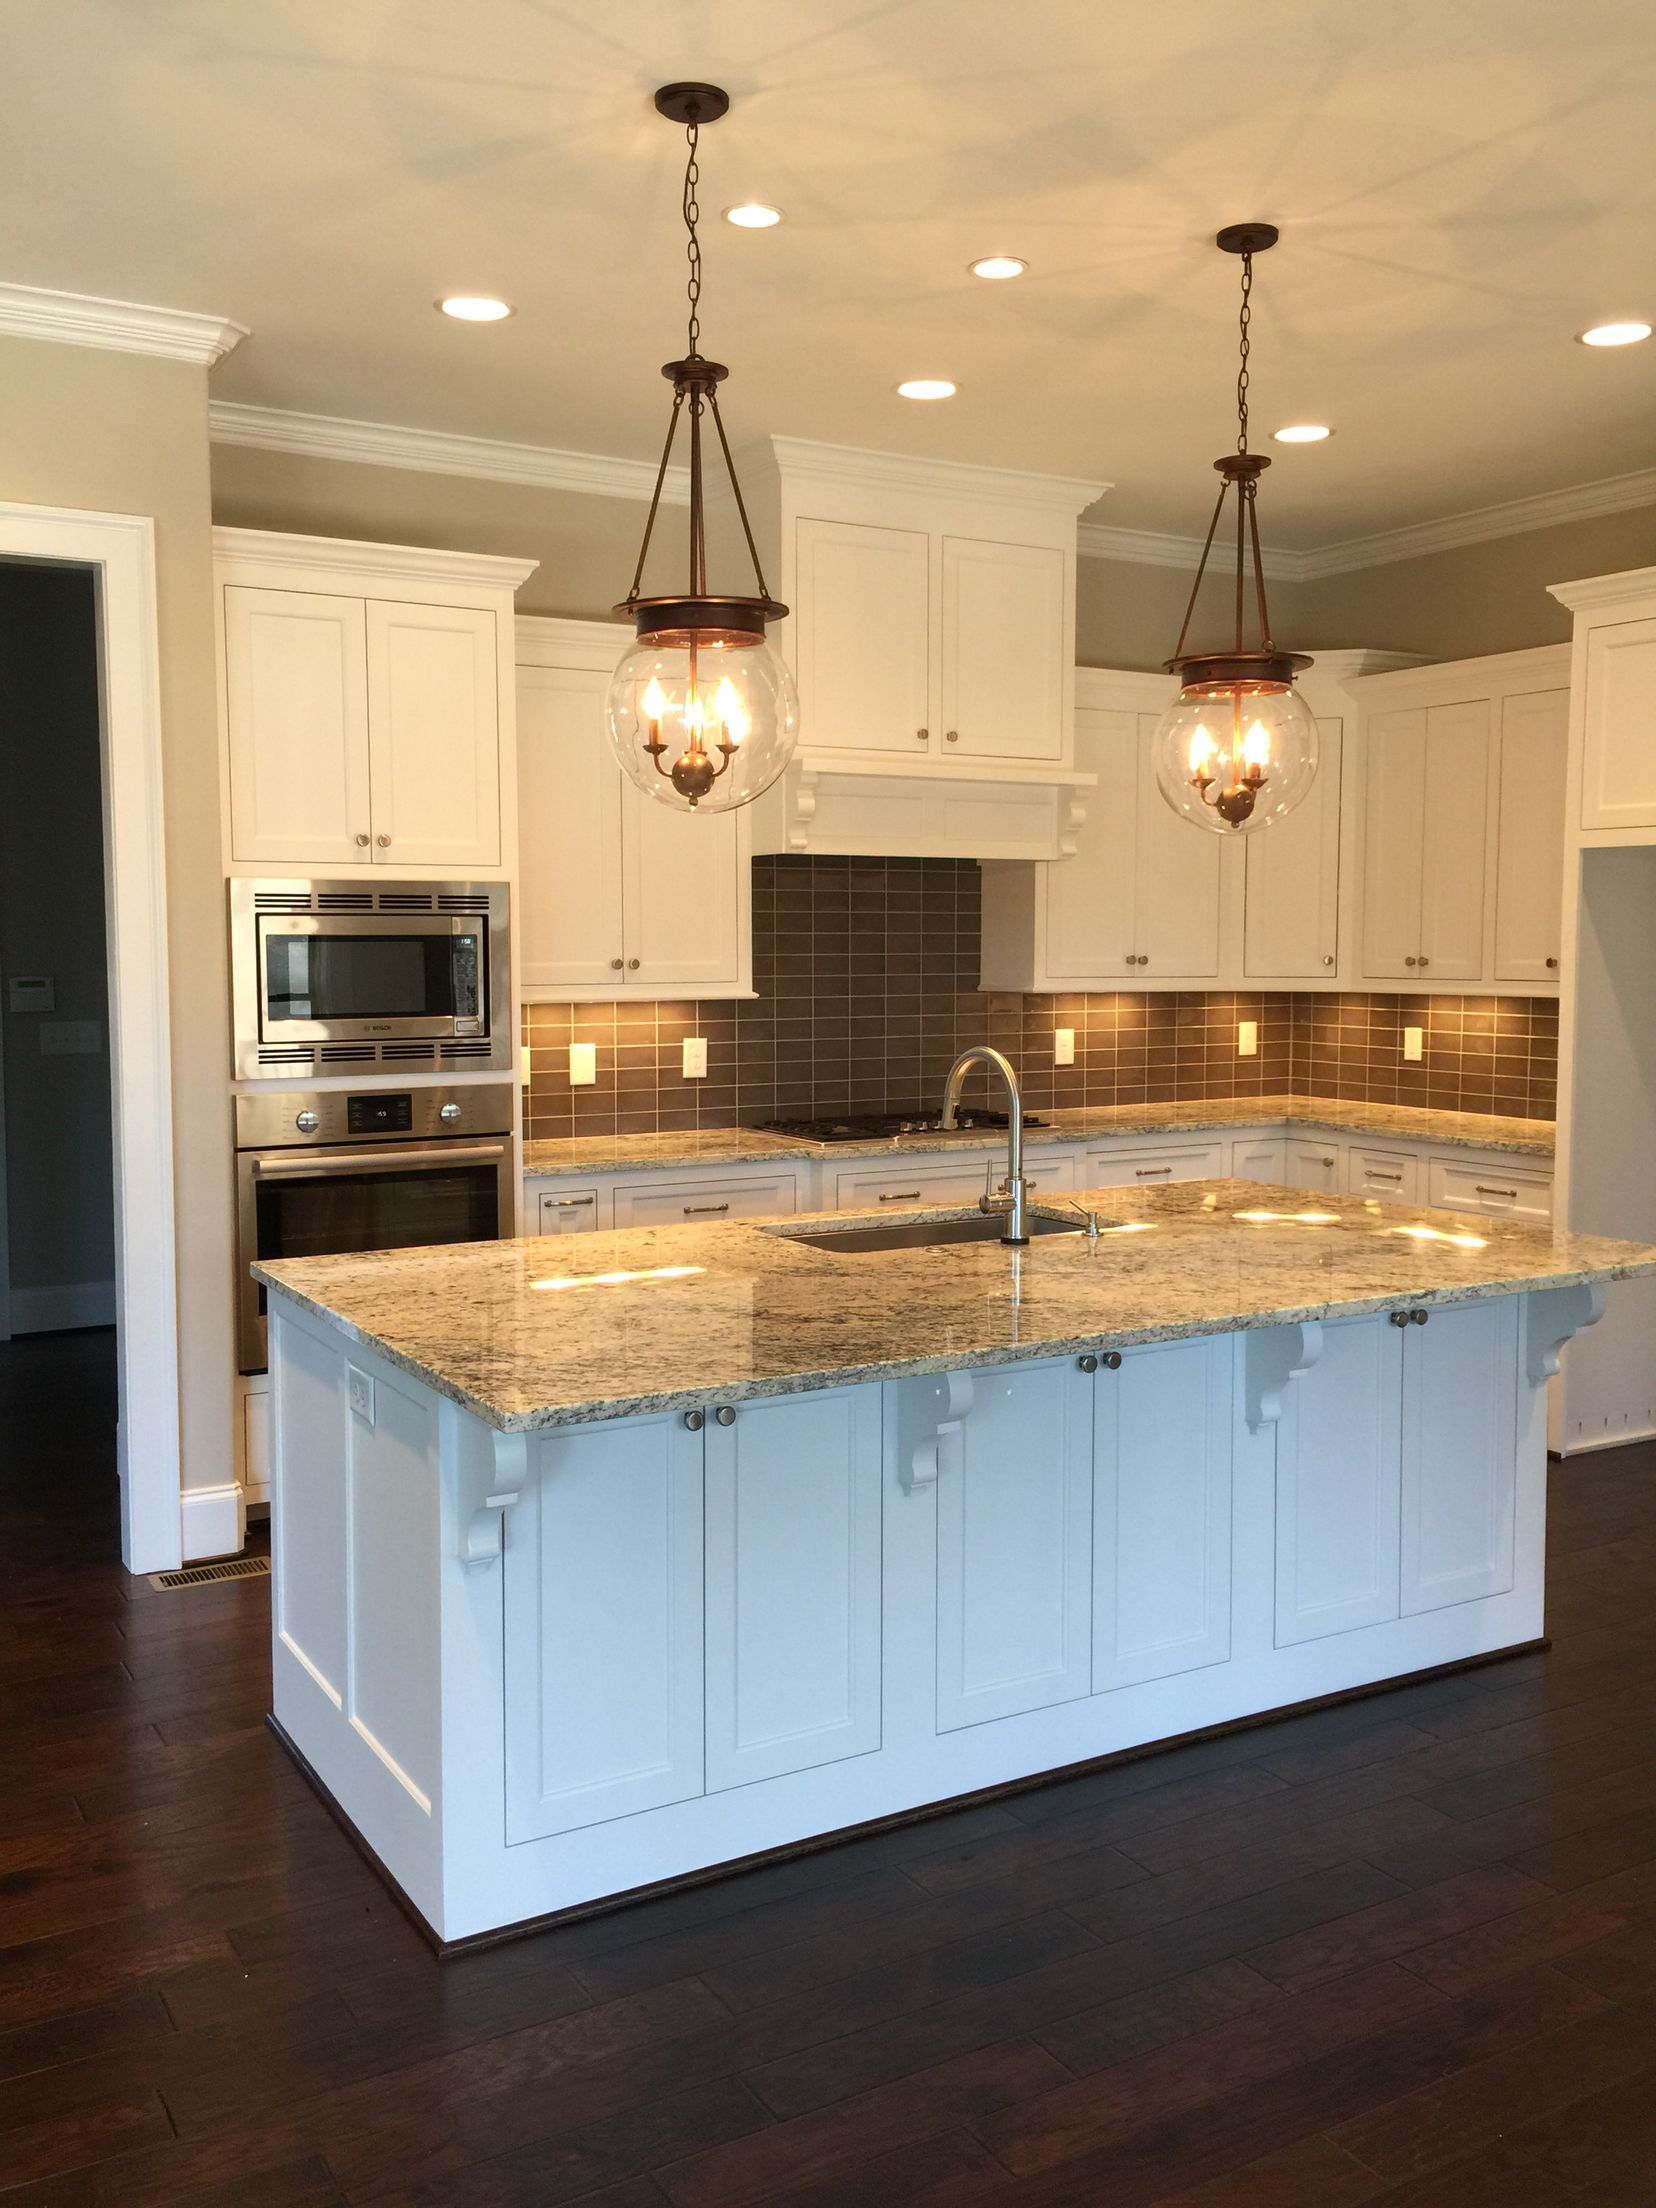 Sherwin Williams Pure White Cabinets Worldly Gray Walls White Ice Granite Dark Gray S Kitchen Cabinets Grey And White Kitchen Remodel White Kitchen Cabinets